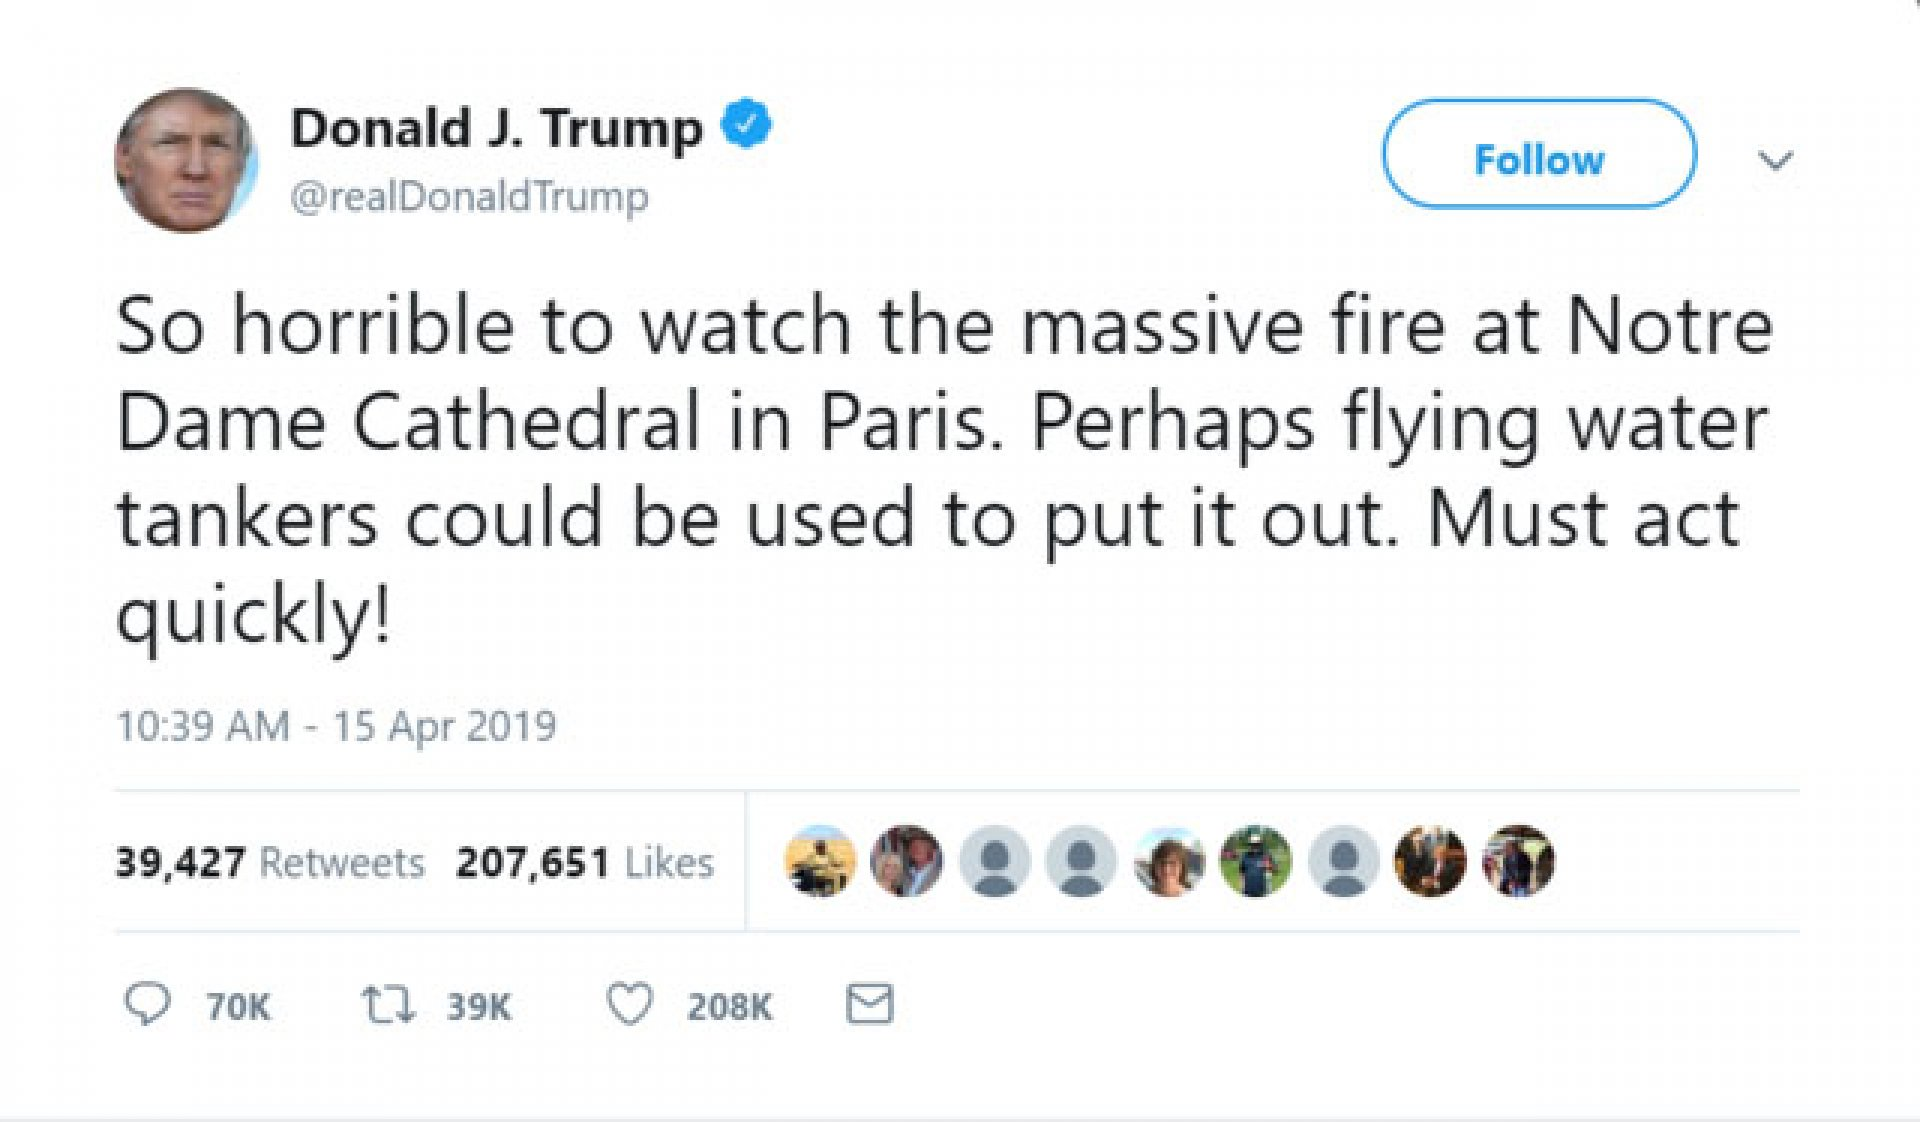 Screen grab from Donald Trump's twitter feed.